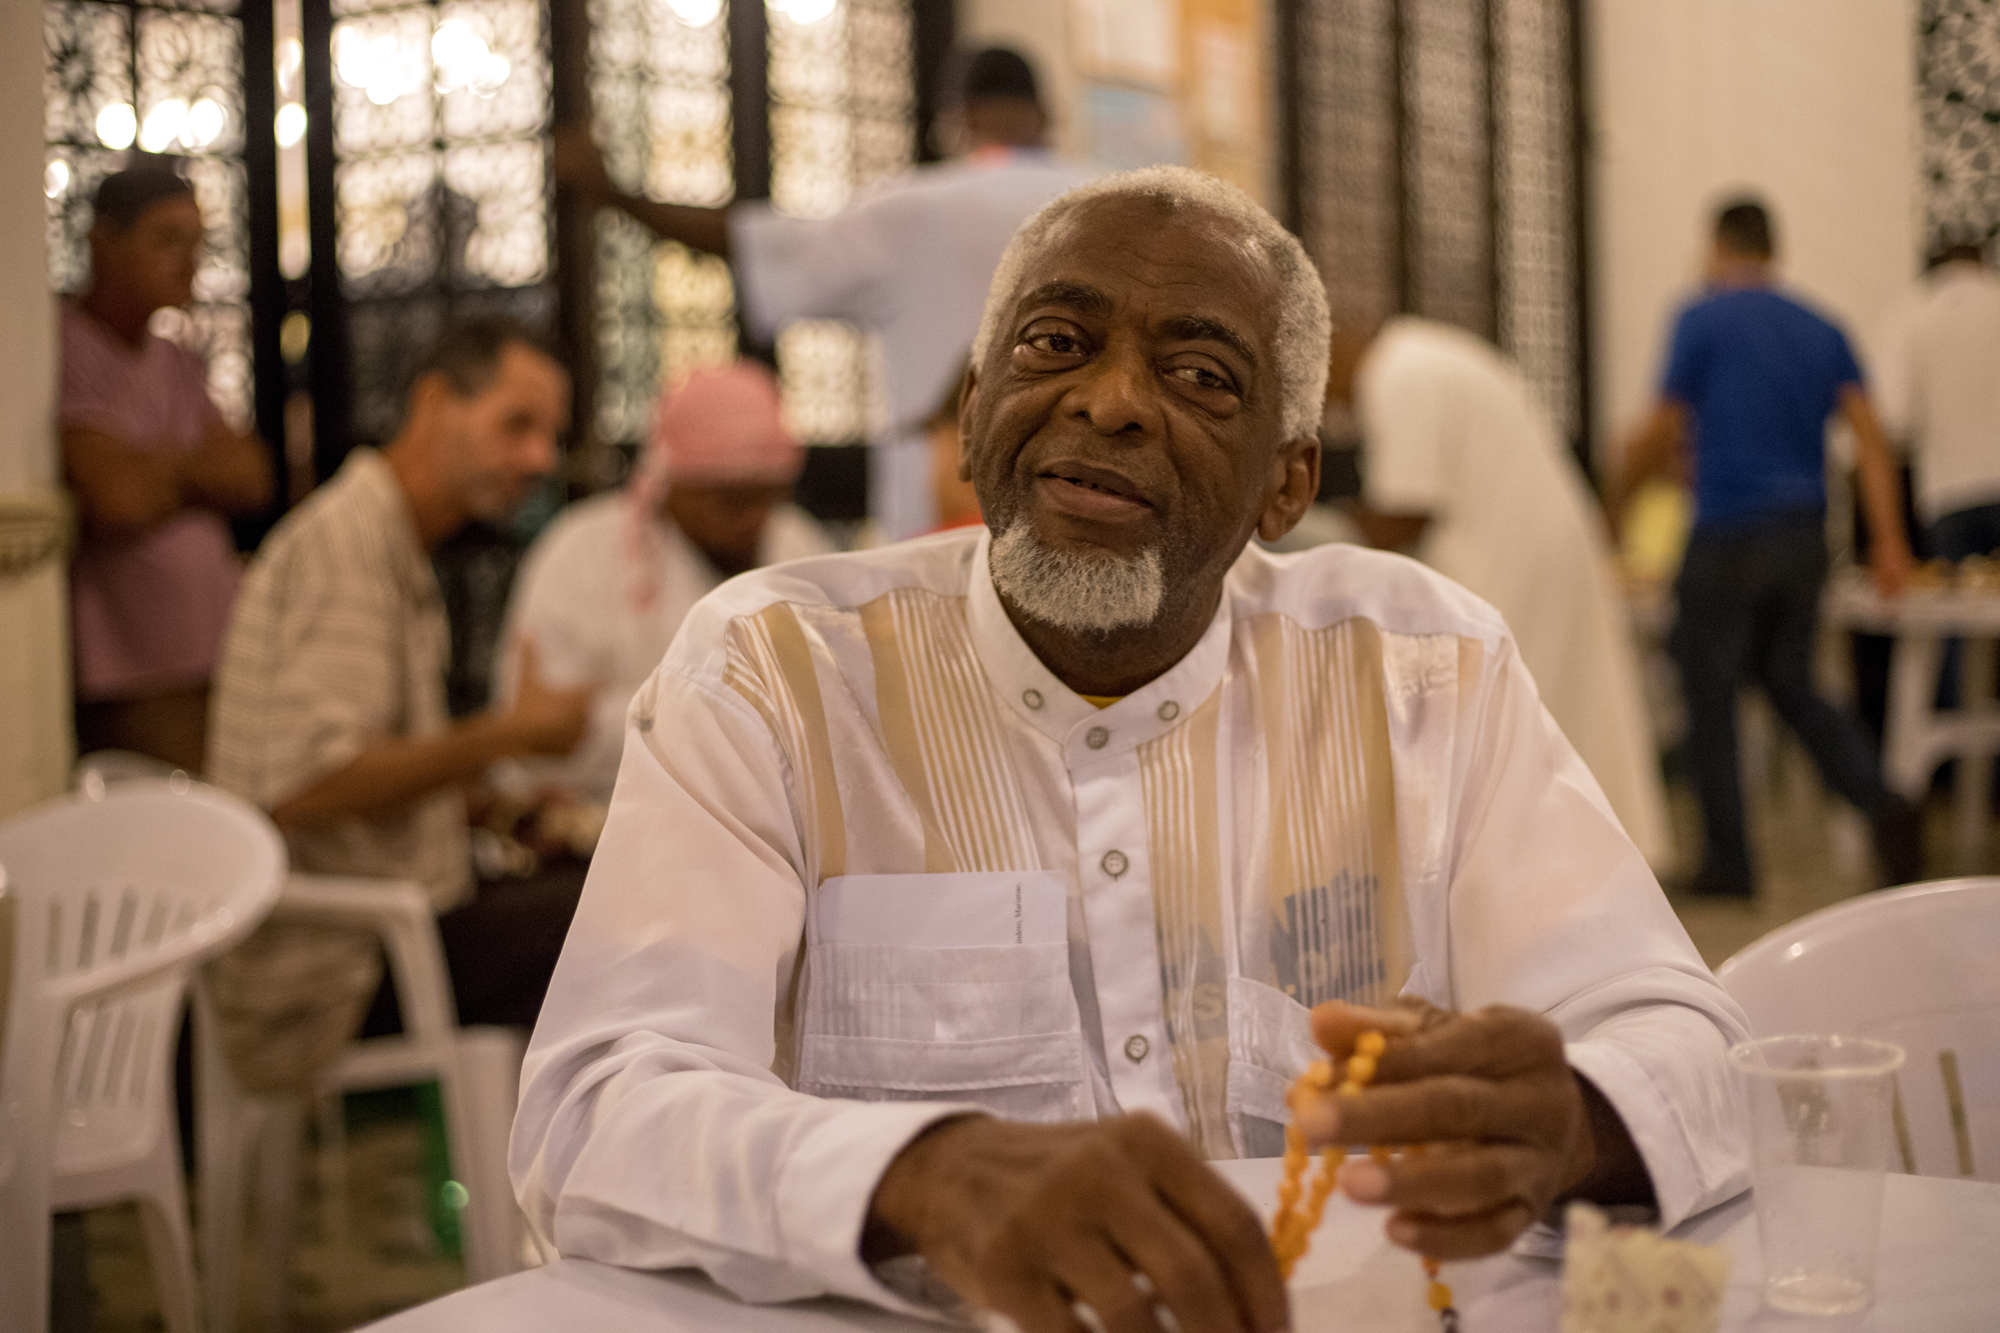 Pedro Lazo Yahya, 68, serves as the president of the Cuban Islamic League and has been practicing Islam for 38 years, making him one of the longest practicing Muslims in Havana.  (Photo by Riley Robinson/The GroundTruth Project)